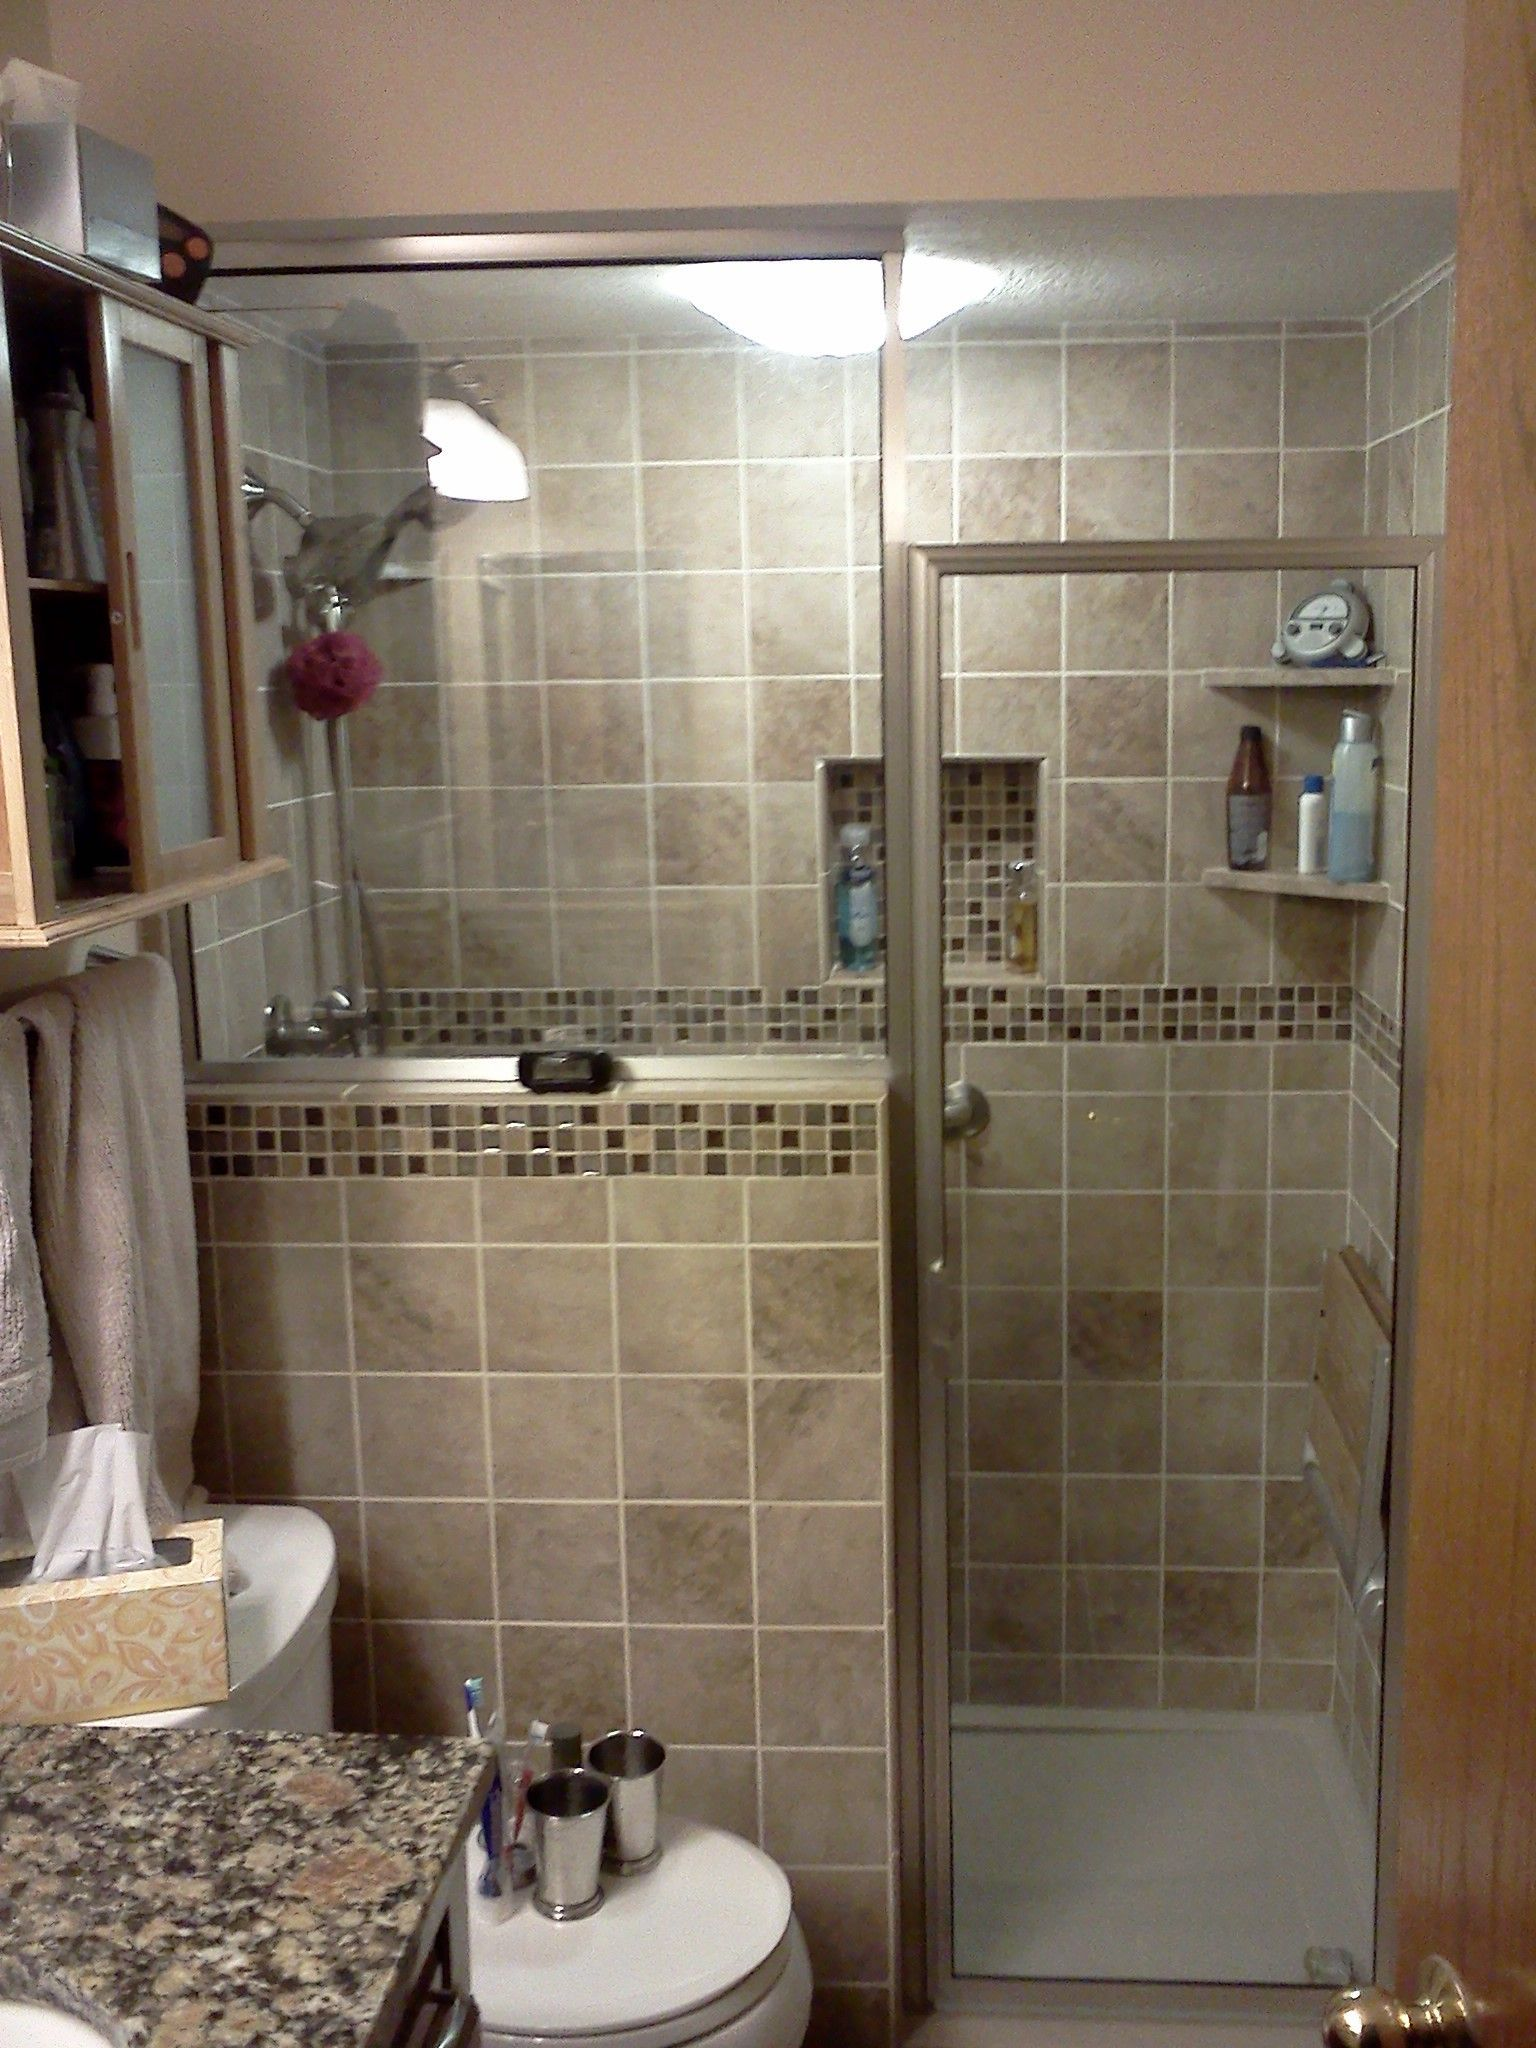 Bathroom Remodelconversion From Tub To Shower With Privacy Wall - Basement bathroom contractors